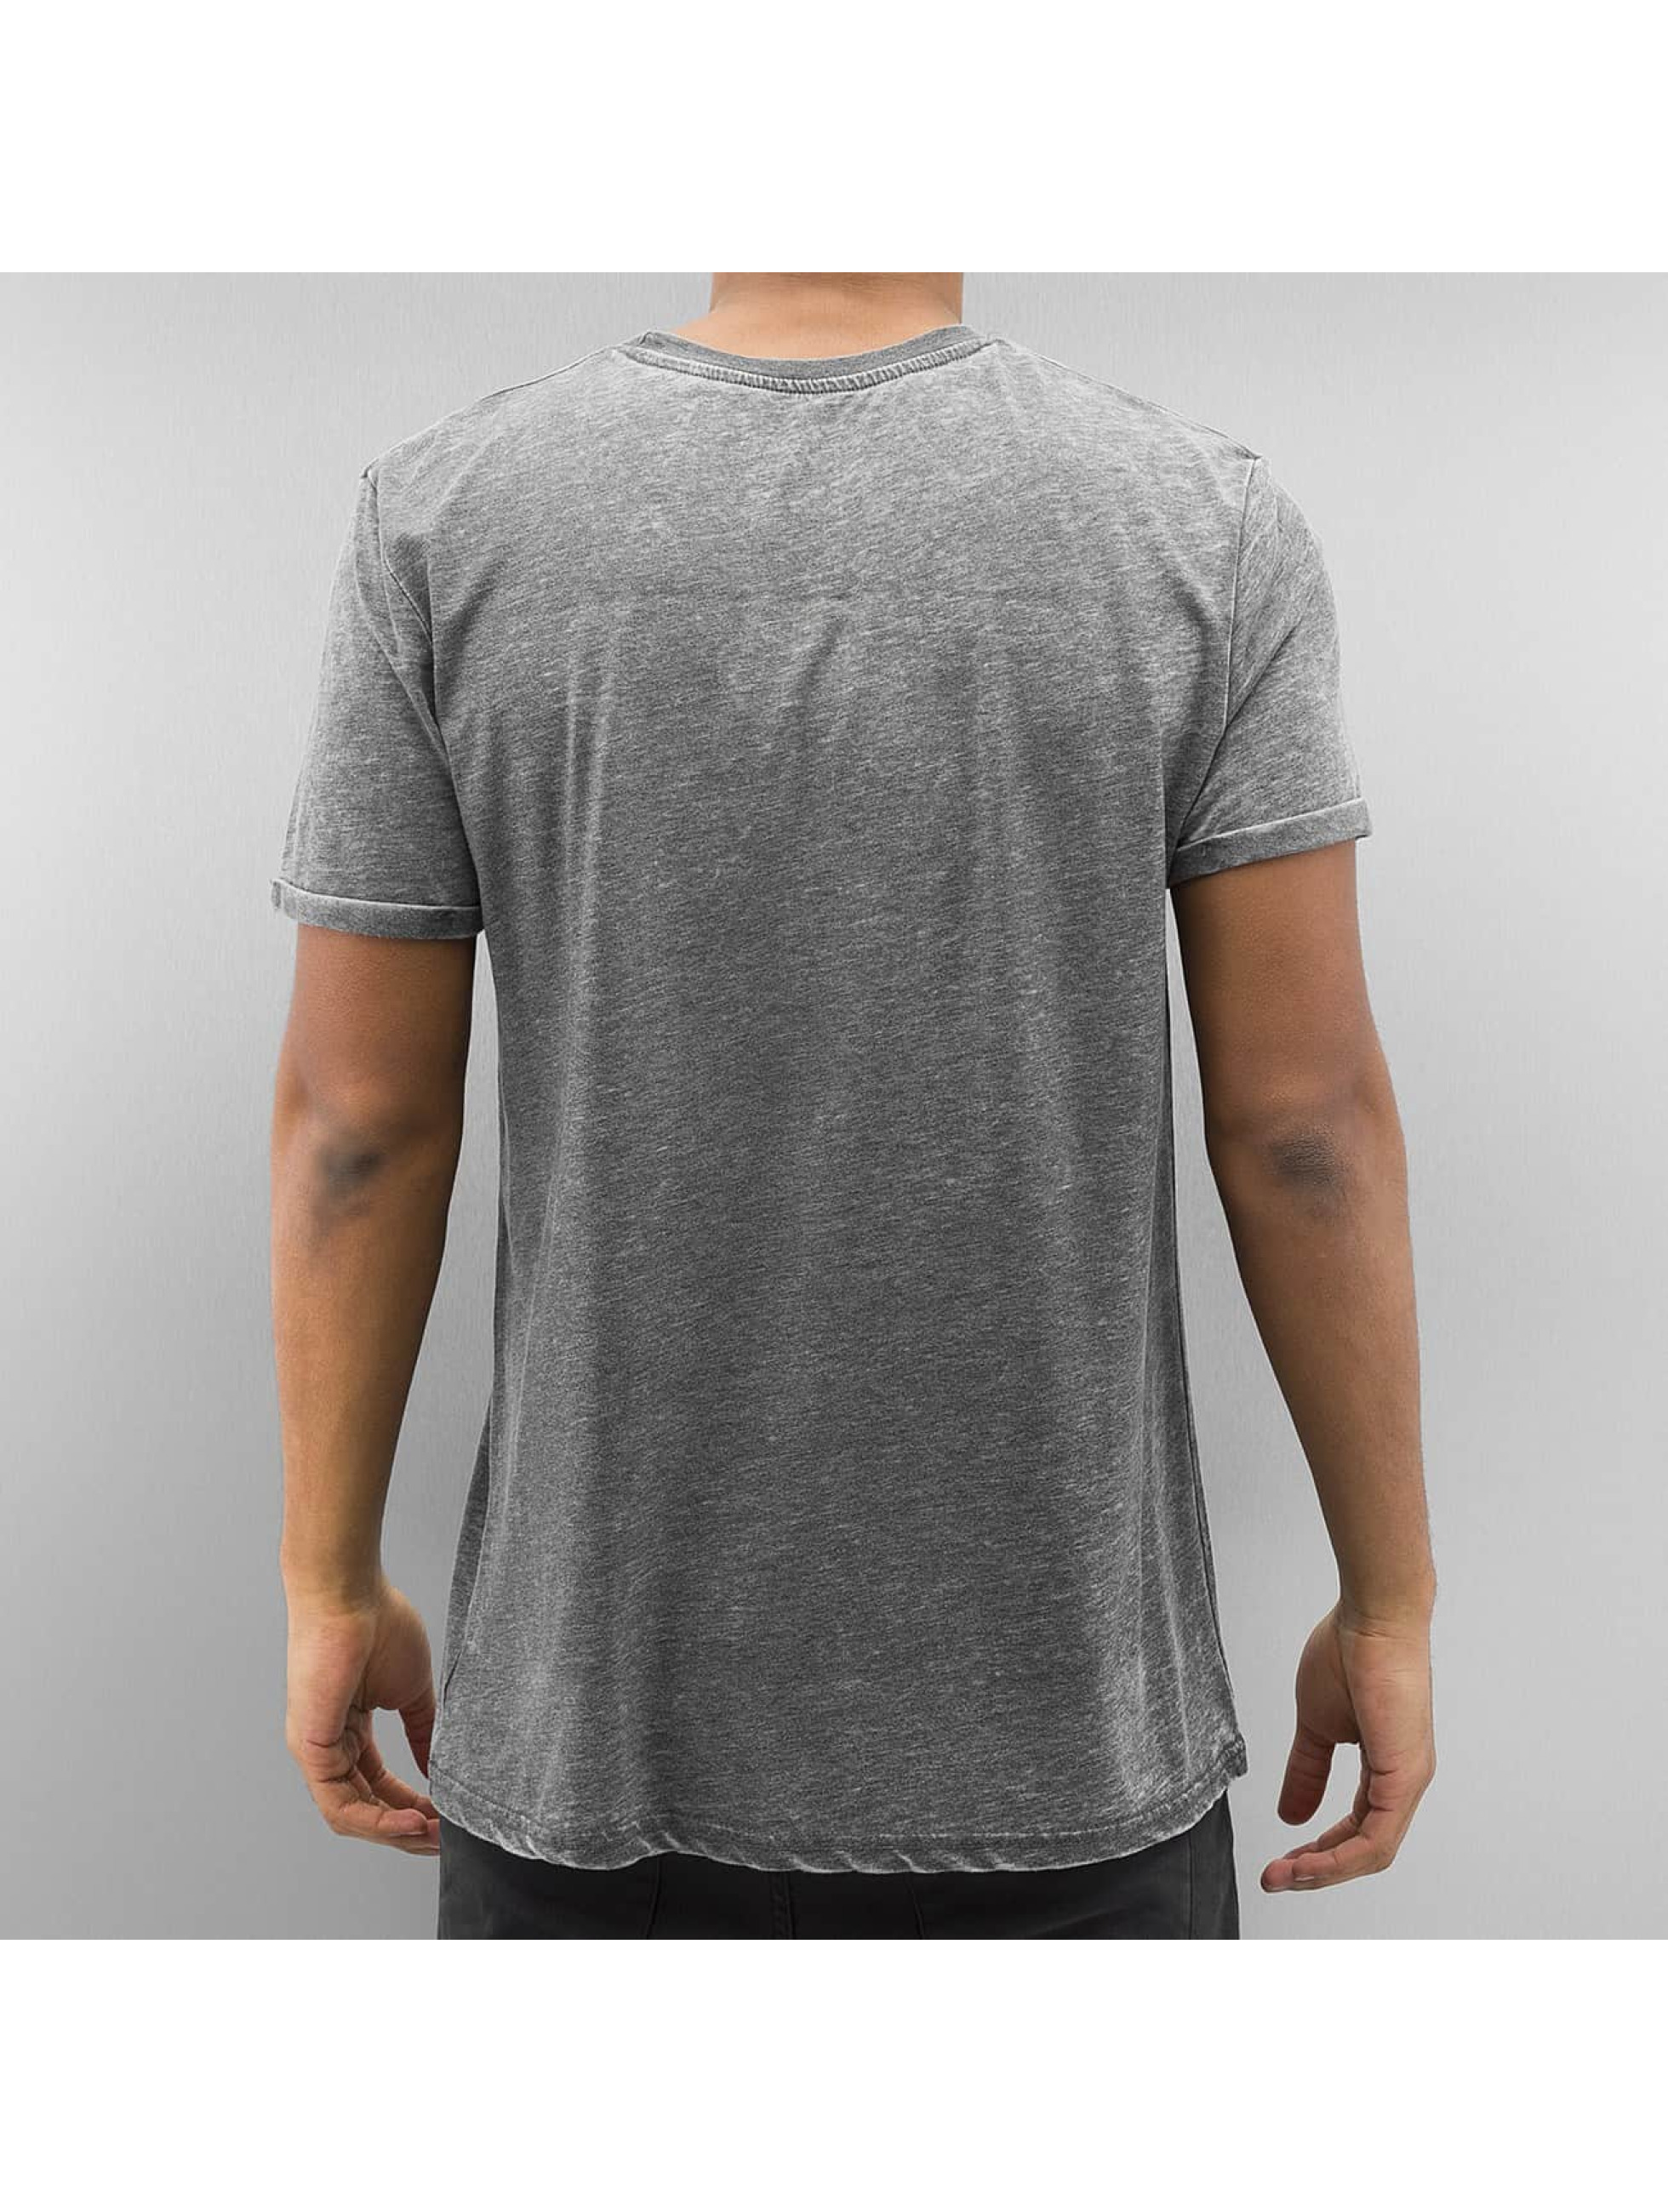 Monkey Business T-Shirt Limited Edition gris